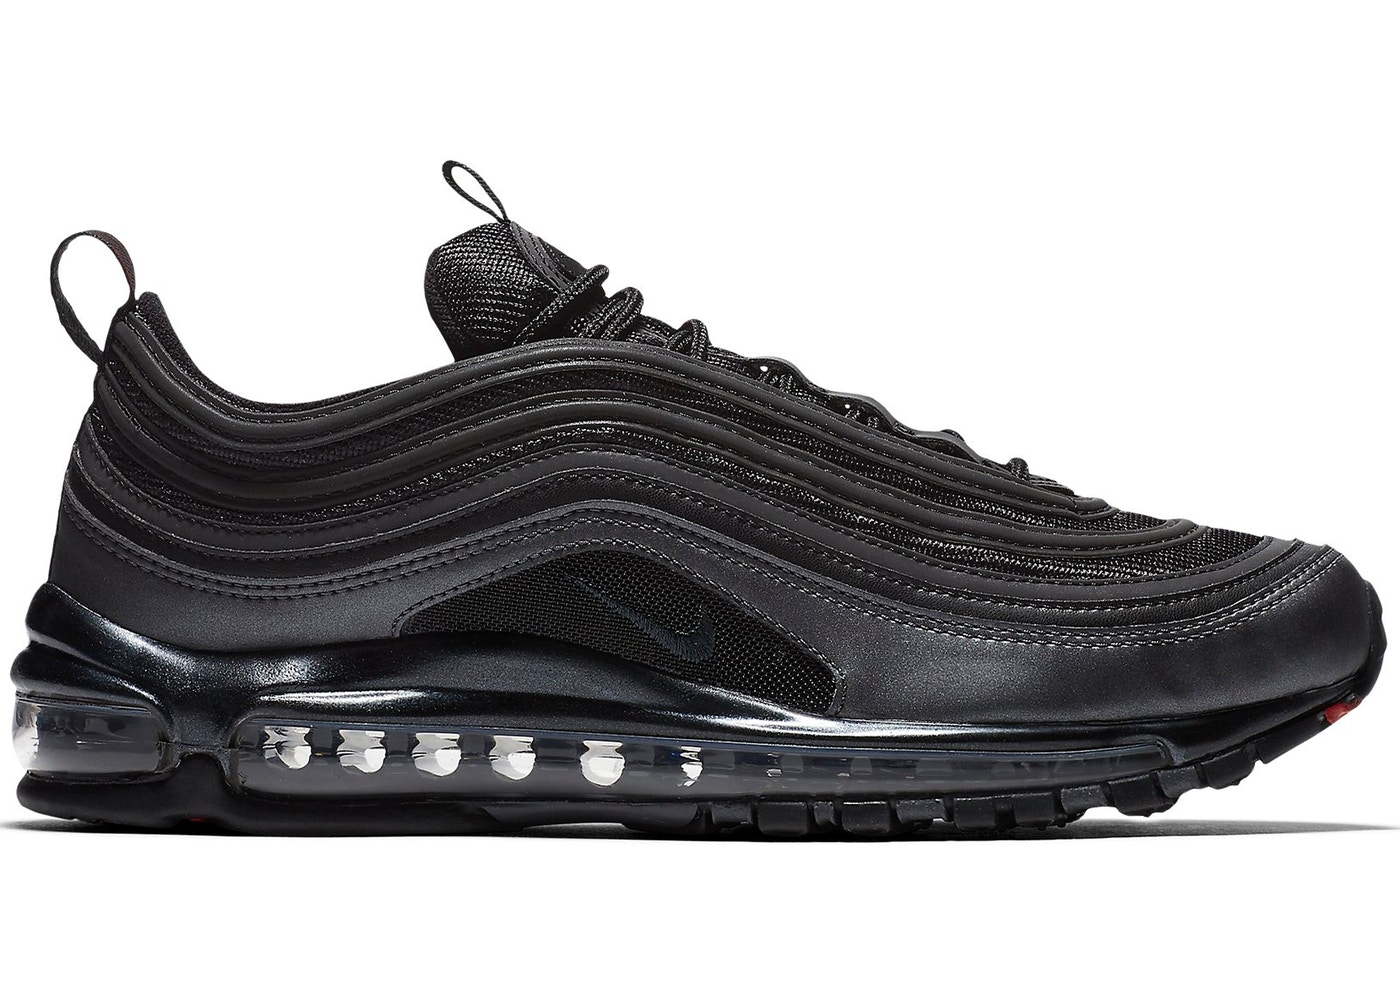 Nike Air Max 97 x UNDEFEATED Are Dropping in